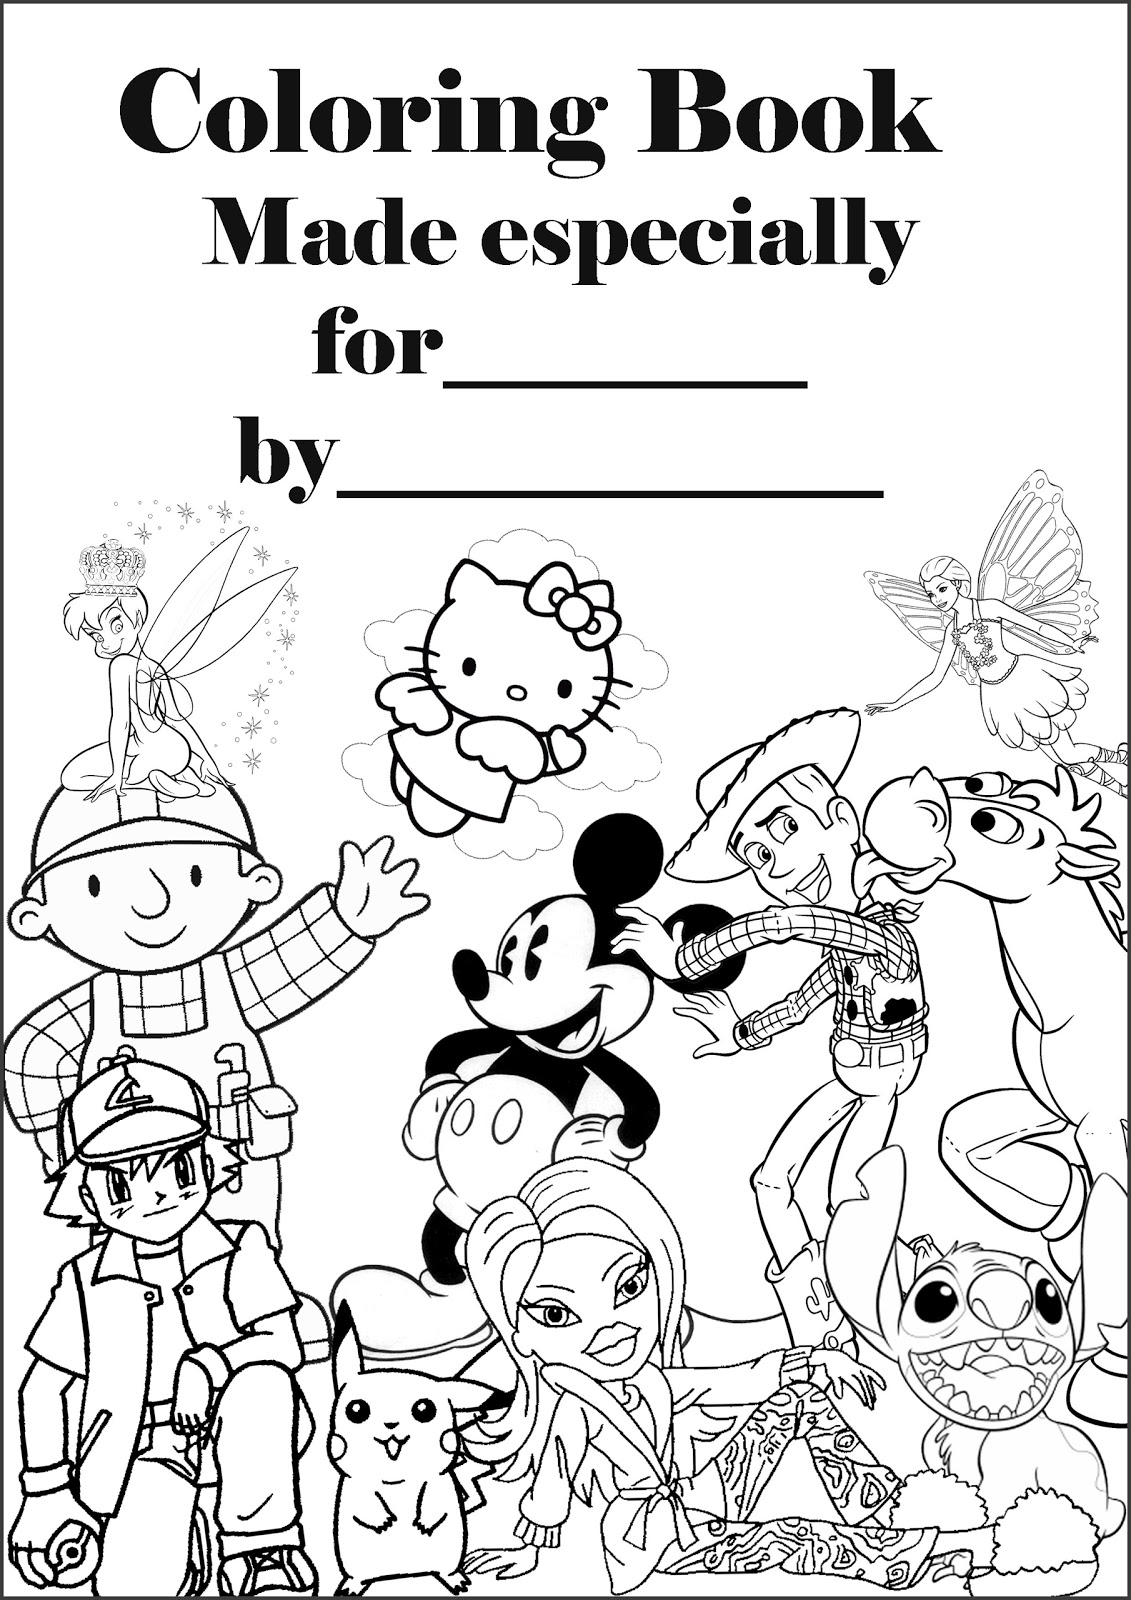 full size coloring pages full size spring coloring pages 2019 open coloring pages pages full coloring size